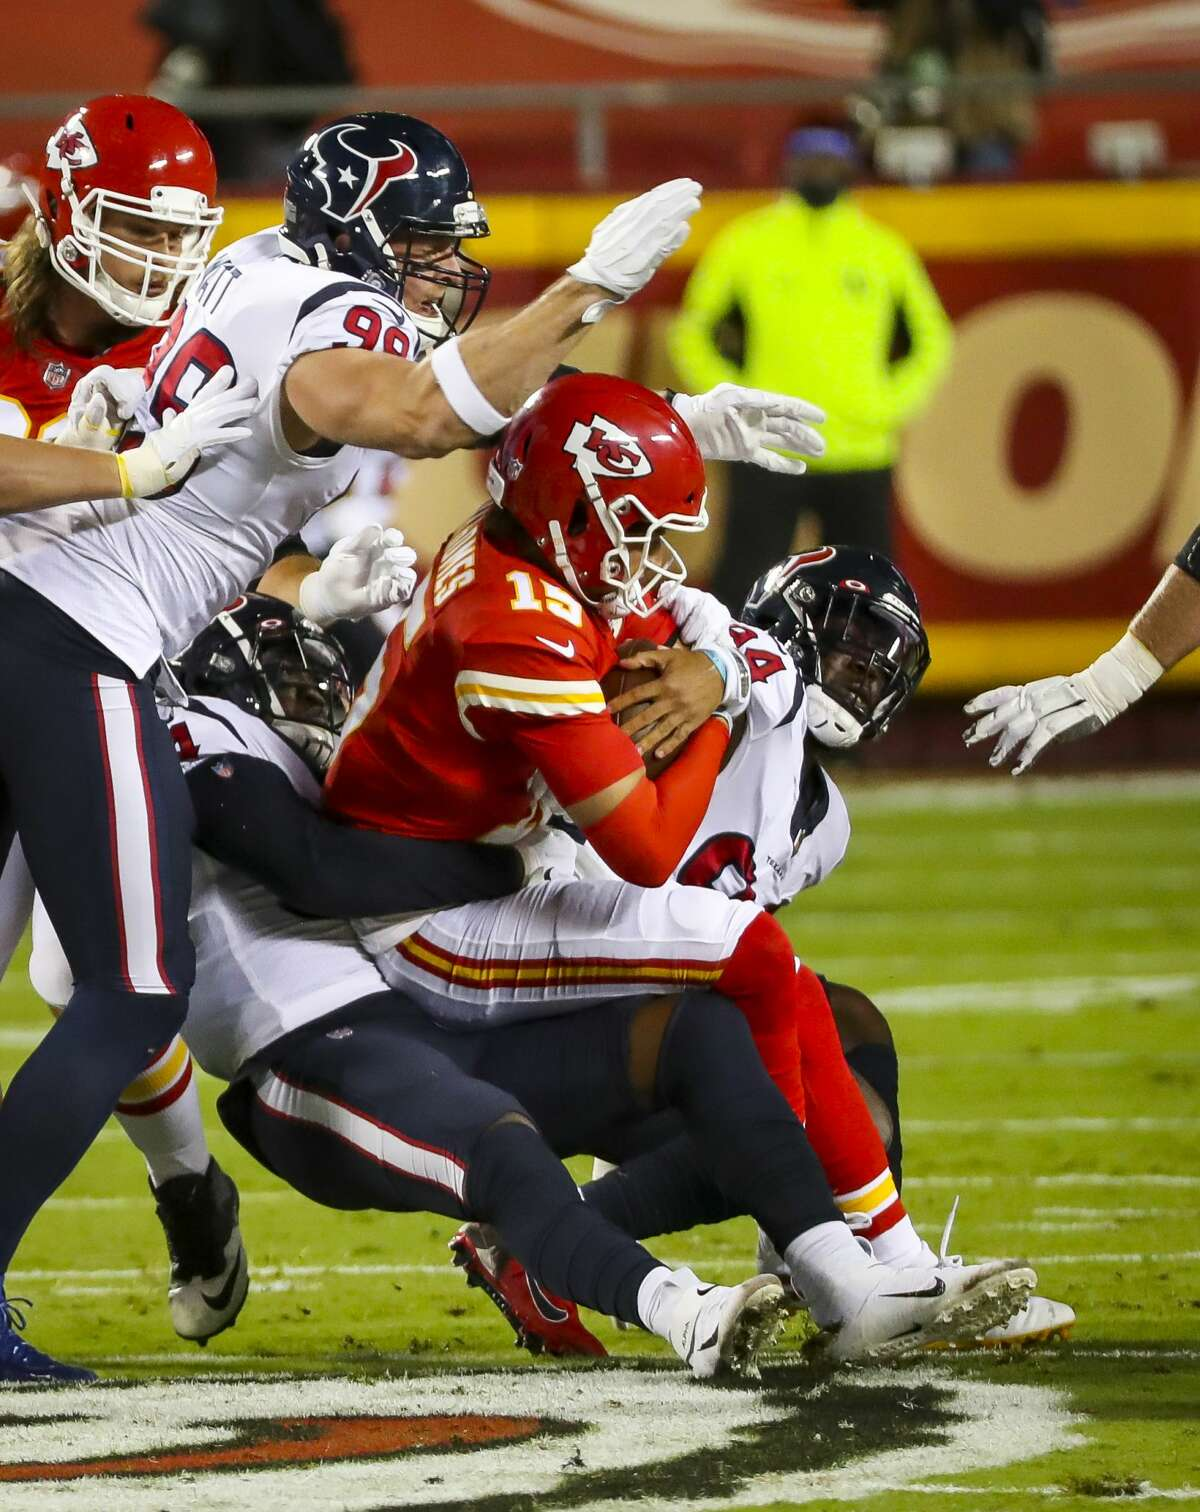 Houston Texans defensive end J.J. Watt (99) helps Houston Texans linebacker Jacob Martin (54) sack Kansas City Chiefs quarterback Patrick Mahomes (15) during the first quarter of an NFL football game on Thursday, Sept. 10, 2020, at Arrowhead Stadium in Kansas City.